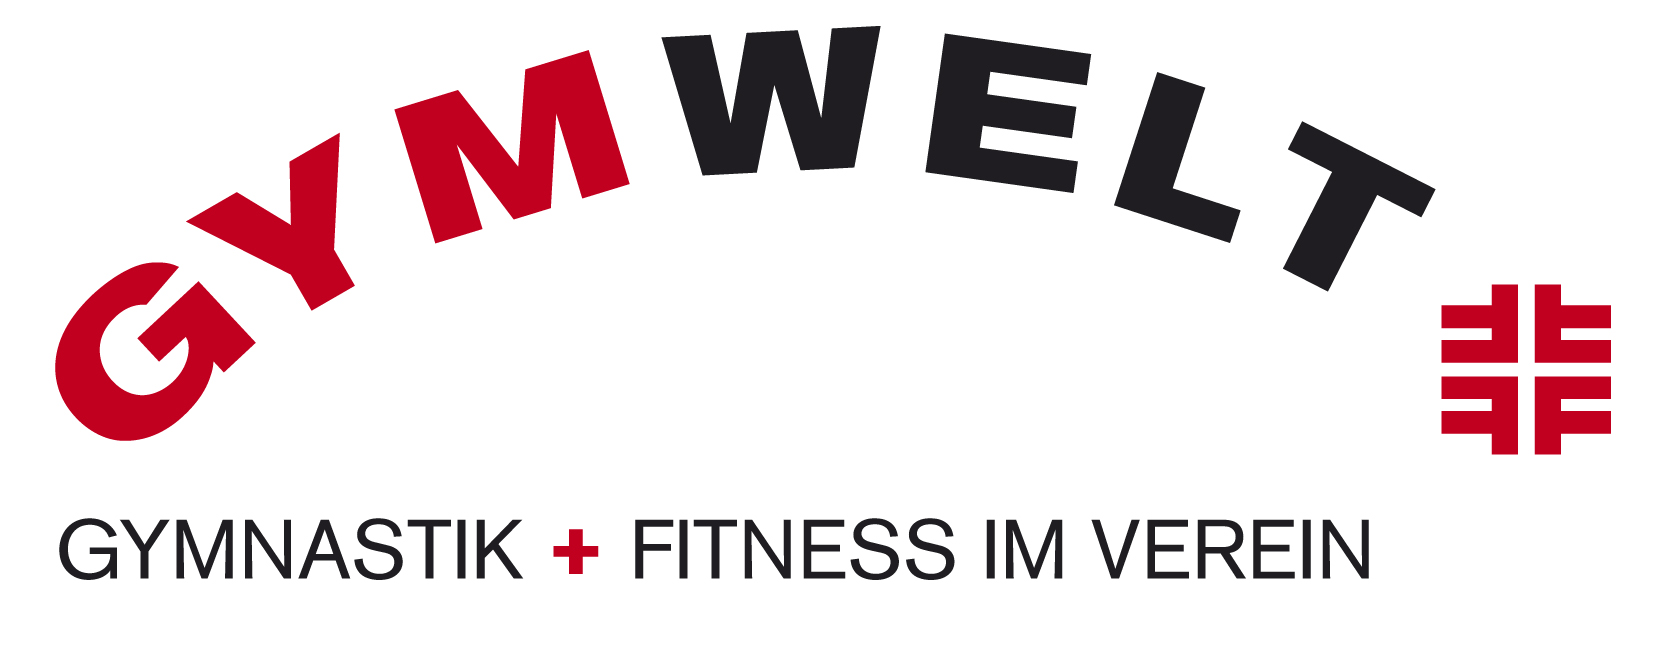 Logo DTB GYMWELT GYM FIT 01